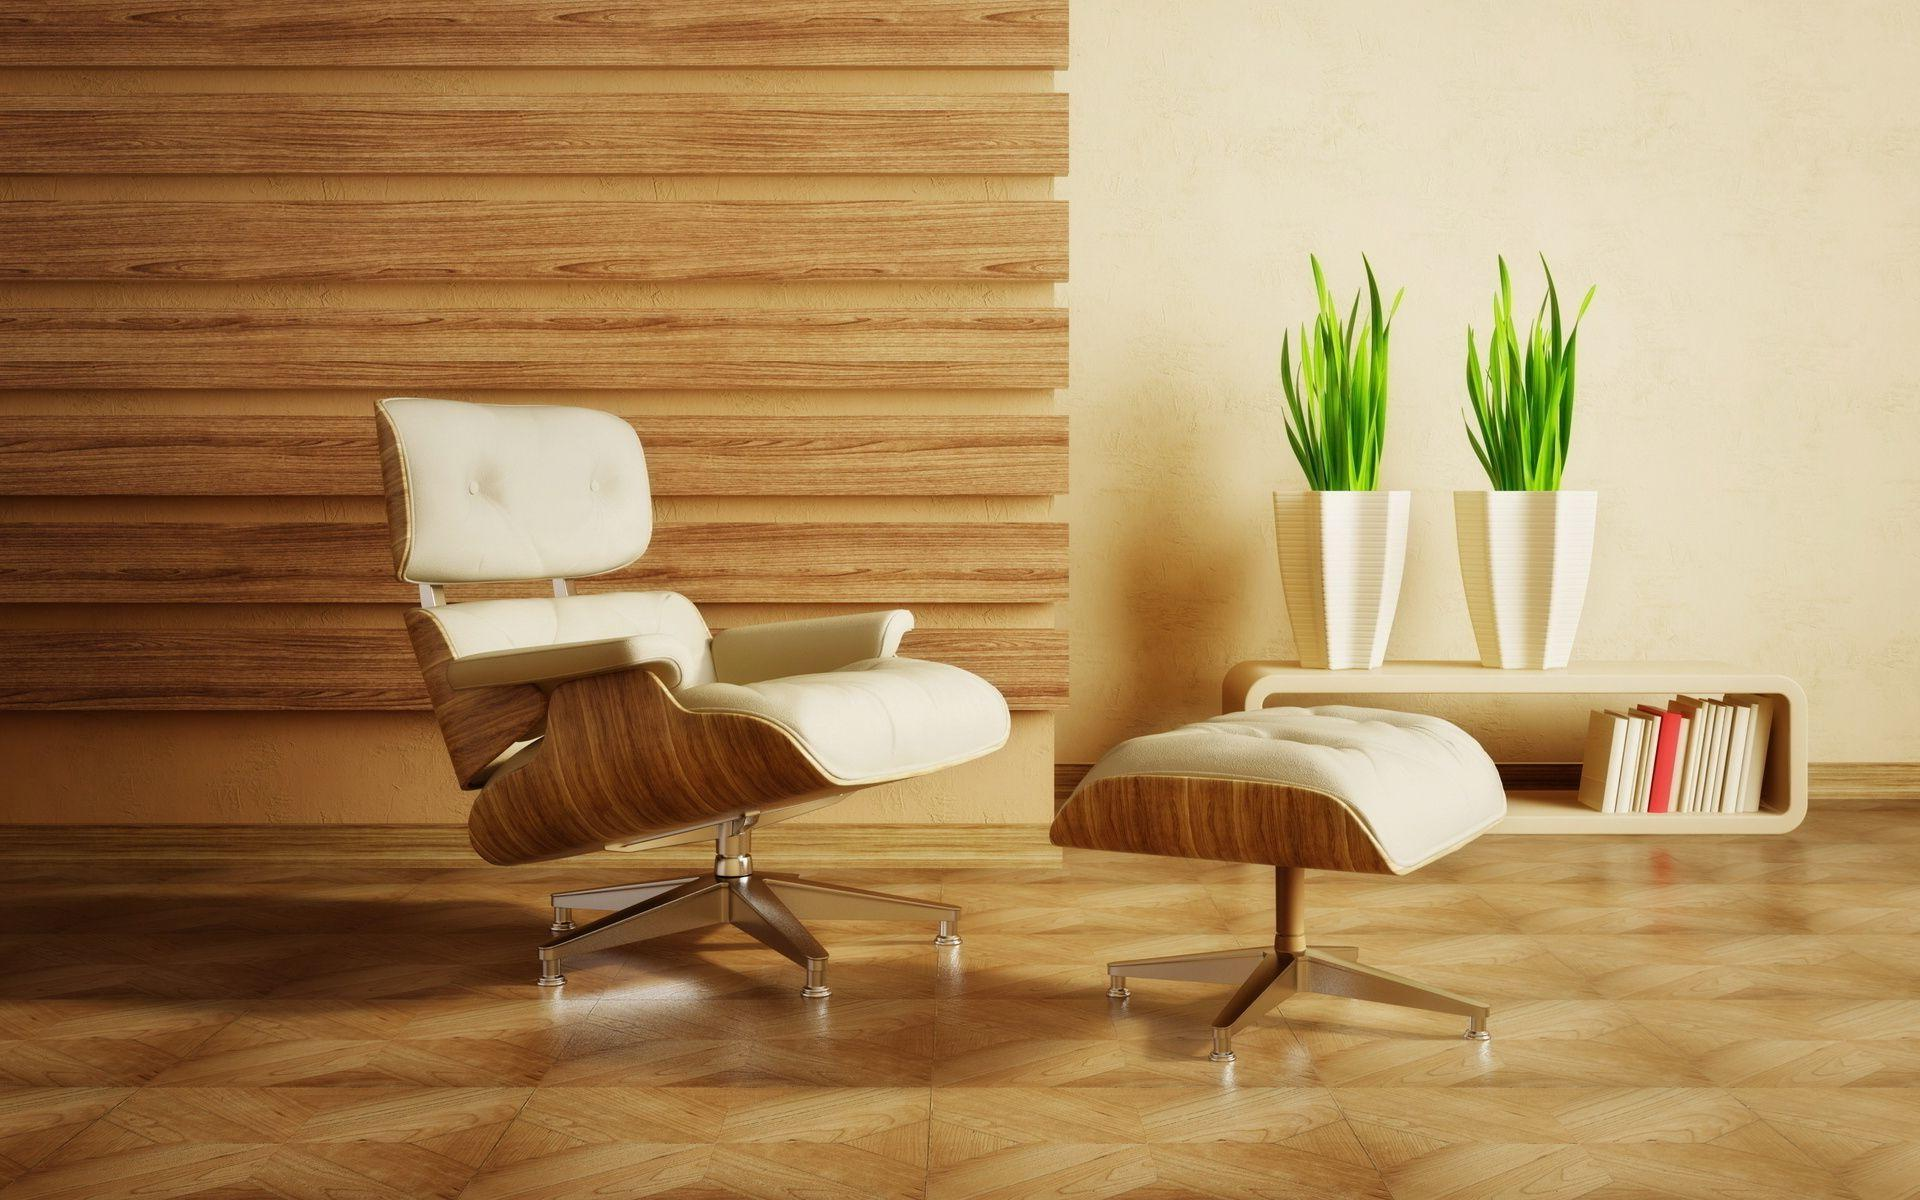 chair design wallpaper cover hire and fitting chairs wallpapers cave furniture pictures images